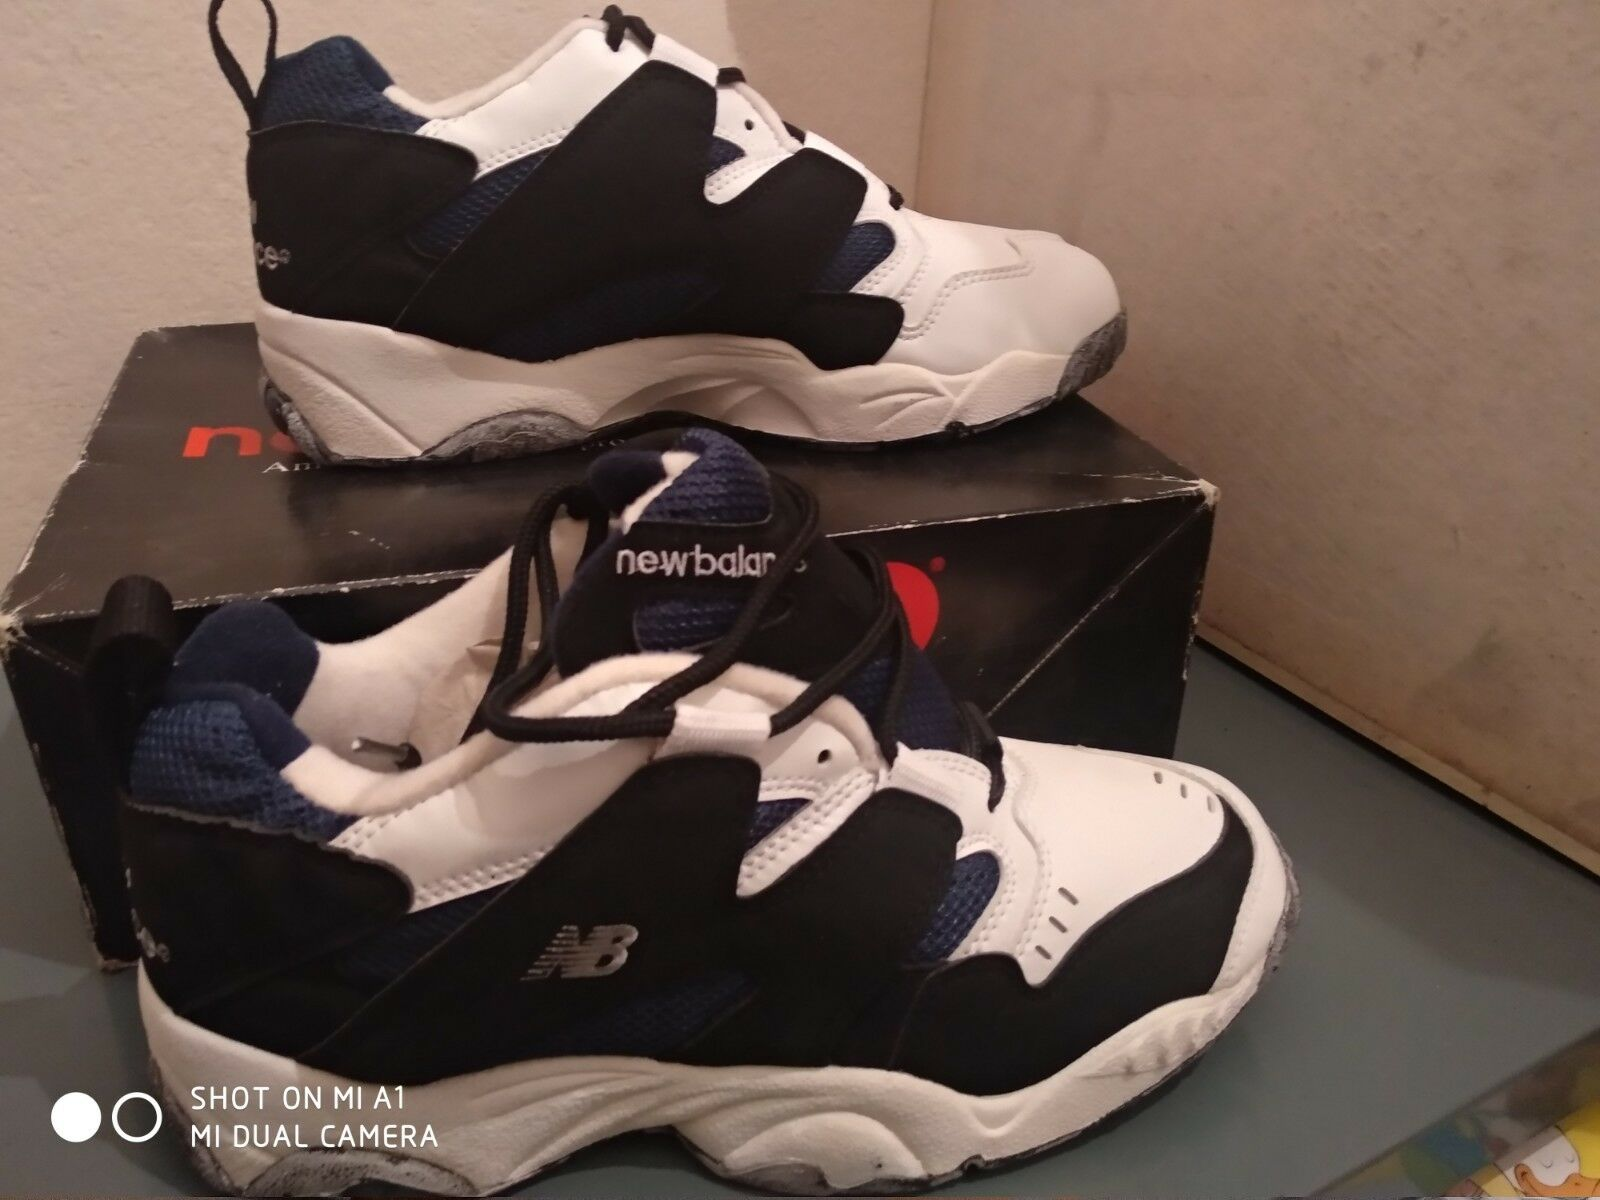 Vintage new balance mx750nv basketball shoes new condition size europe 45 us 11